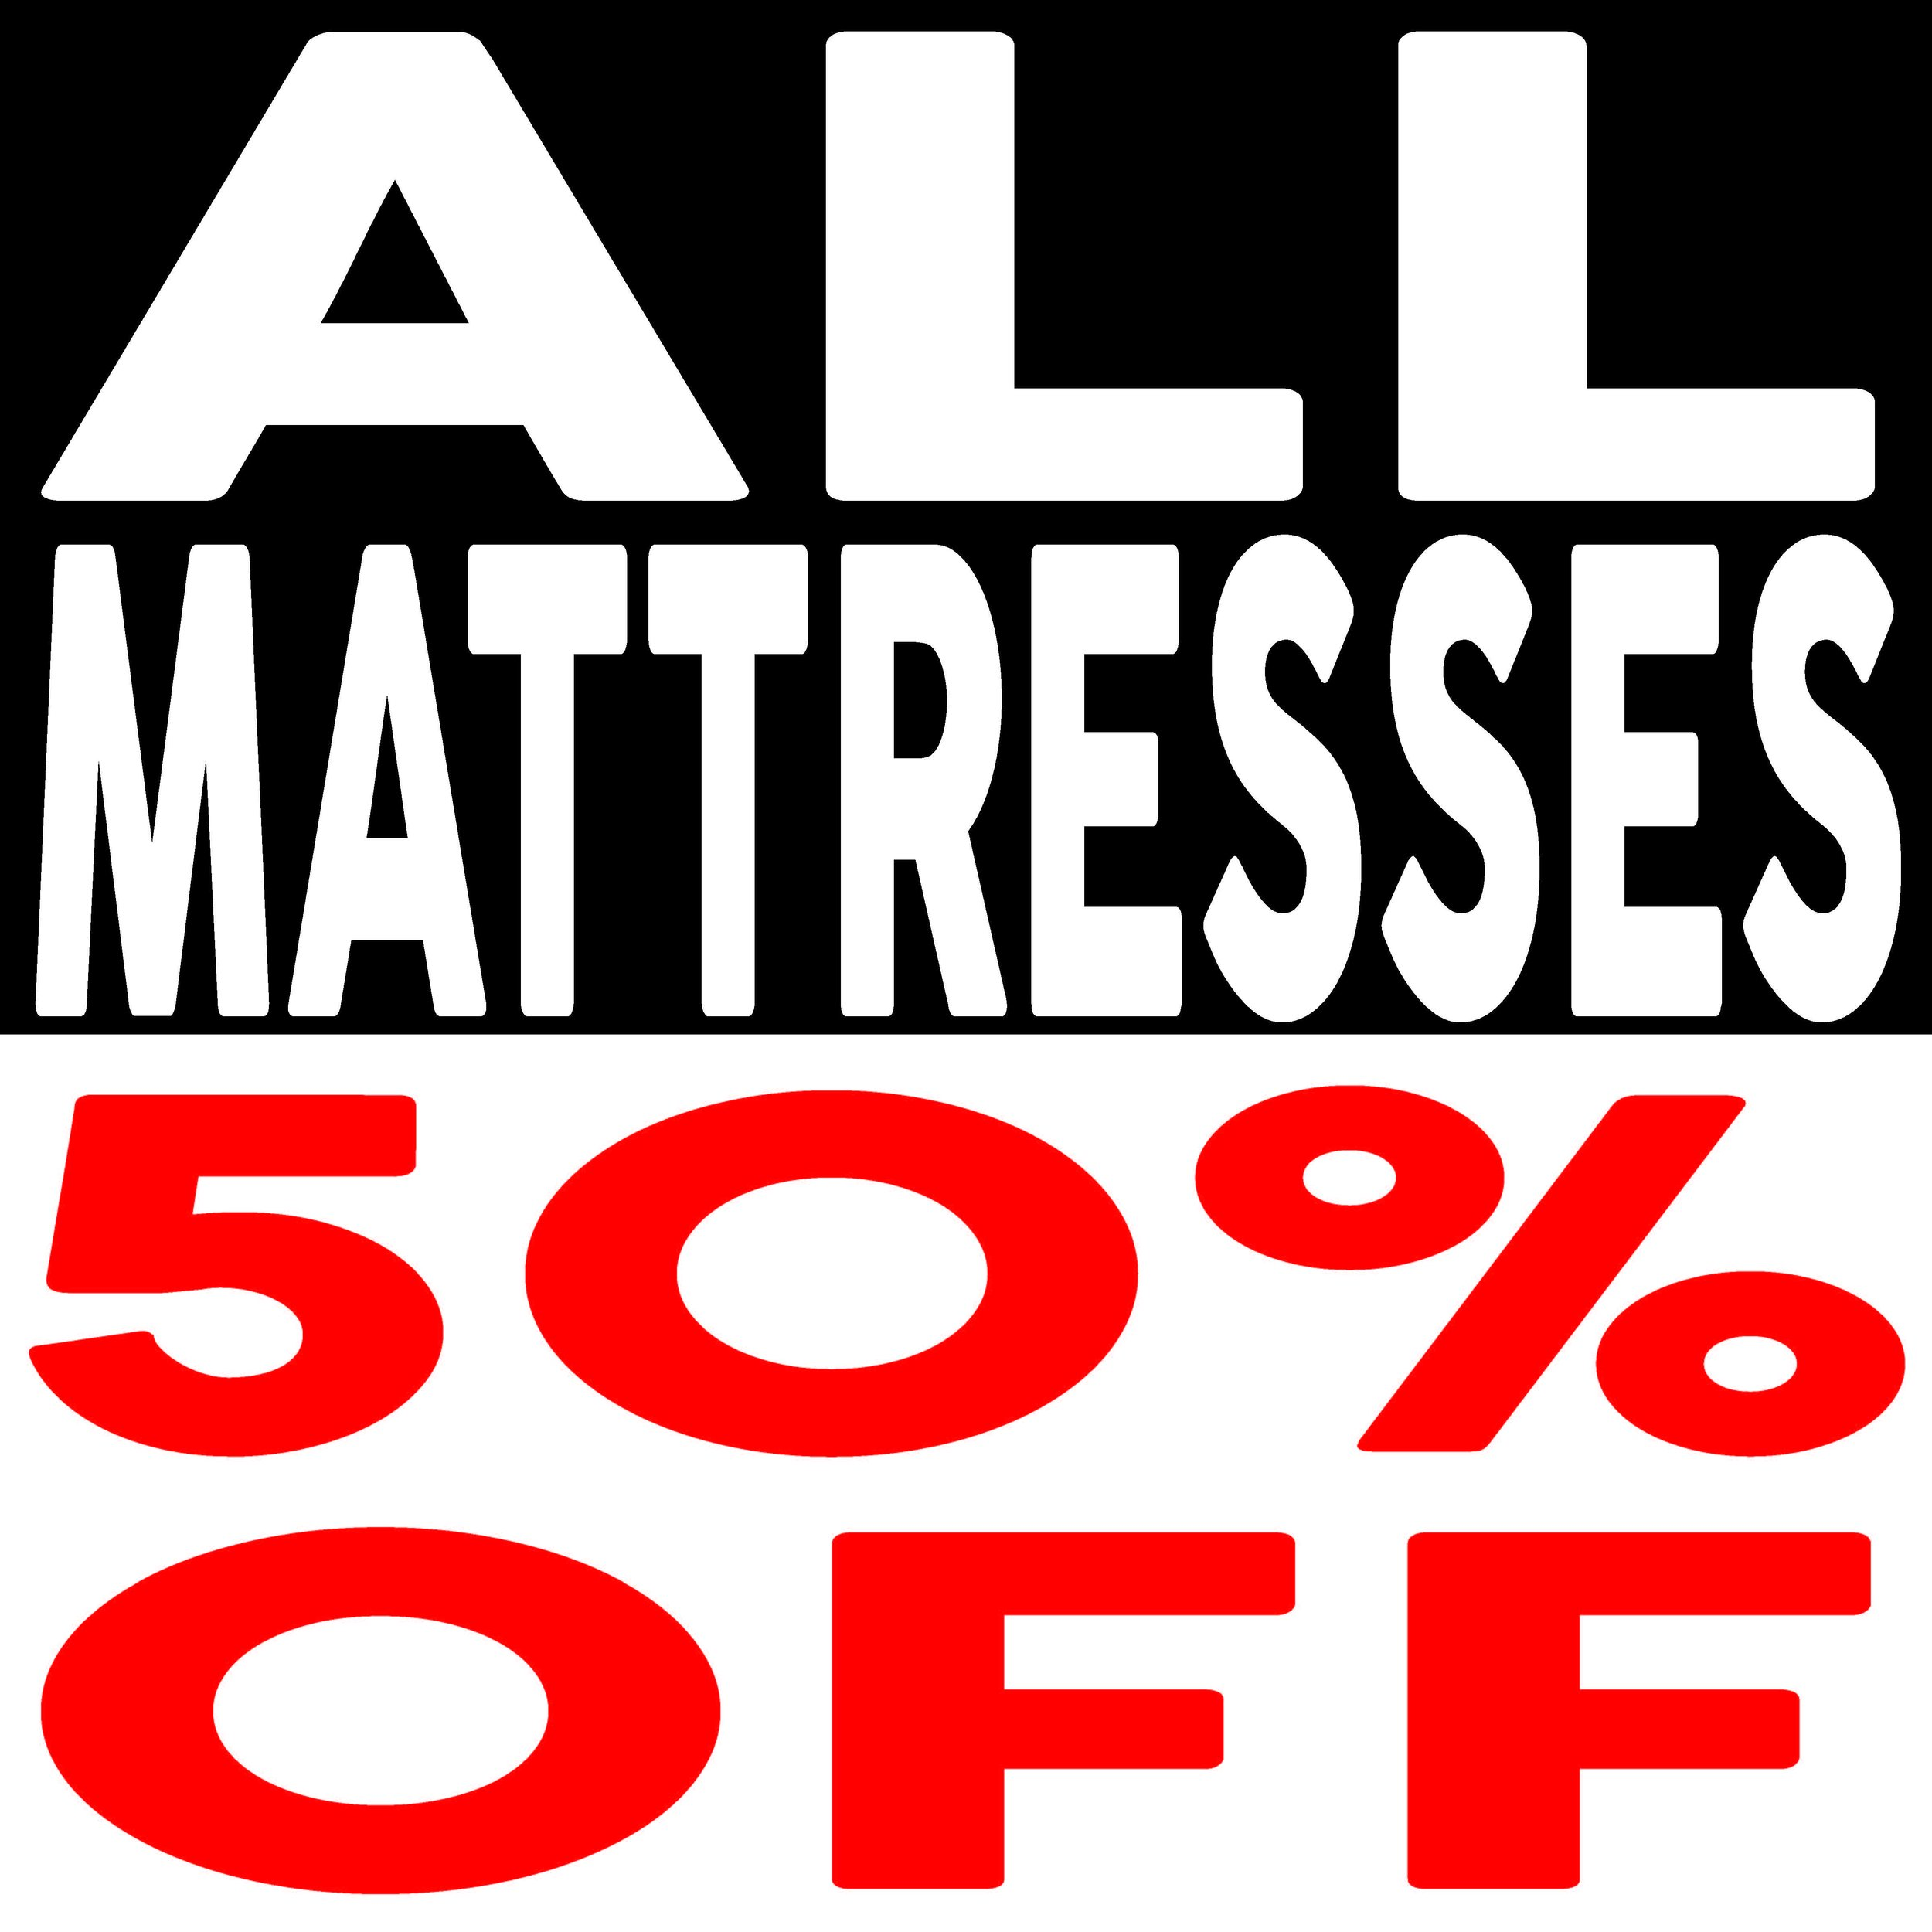 all mattresses 50off jpeg.jpg